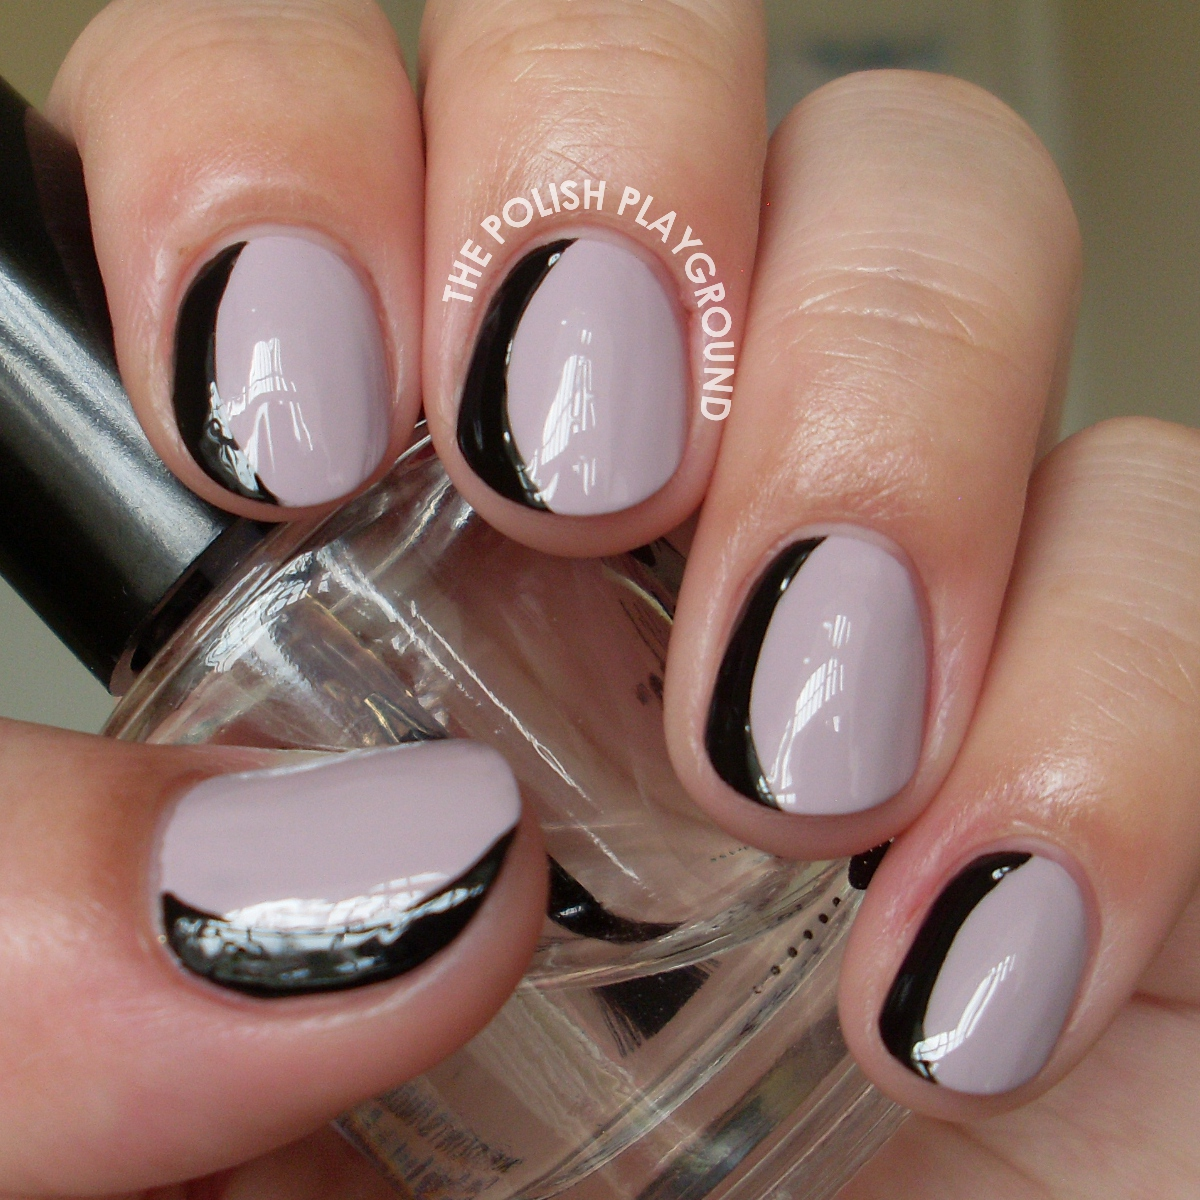 Purple and Black Sideways French Manicure Nail Art